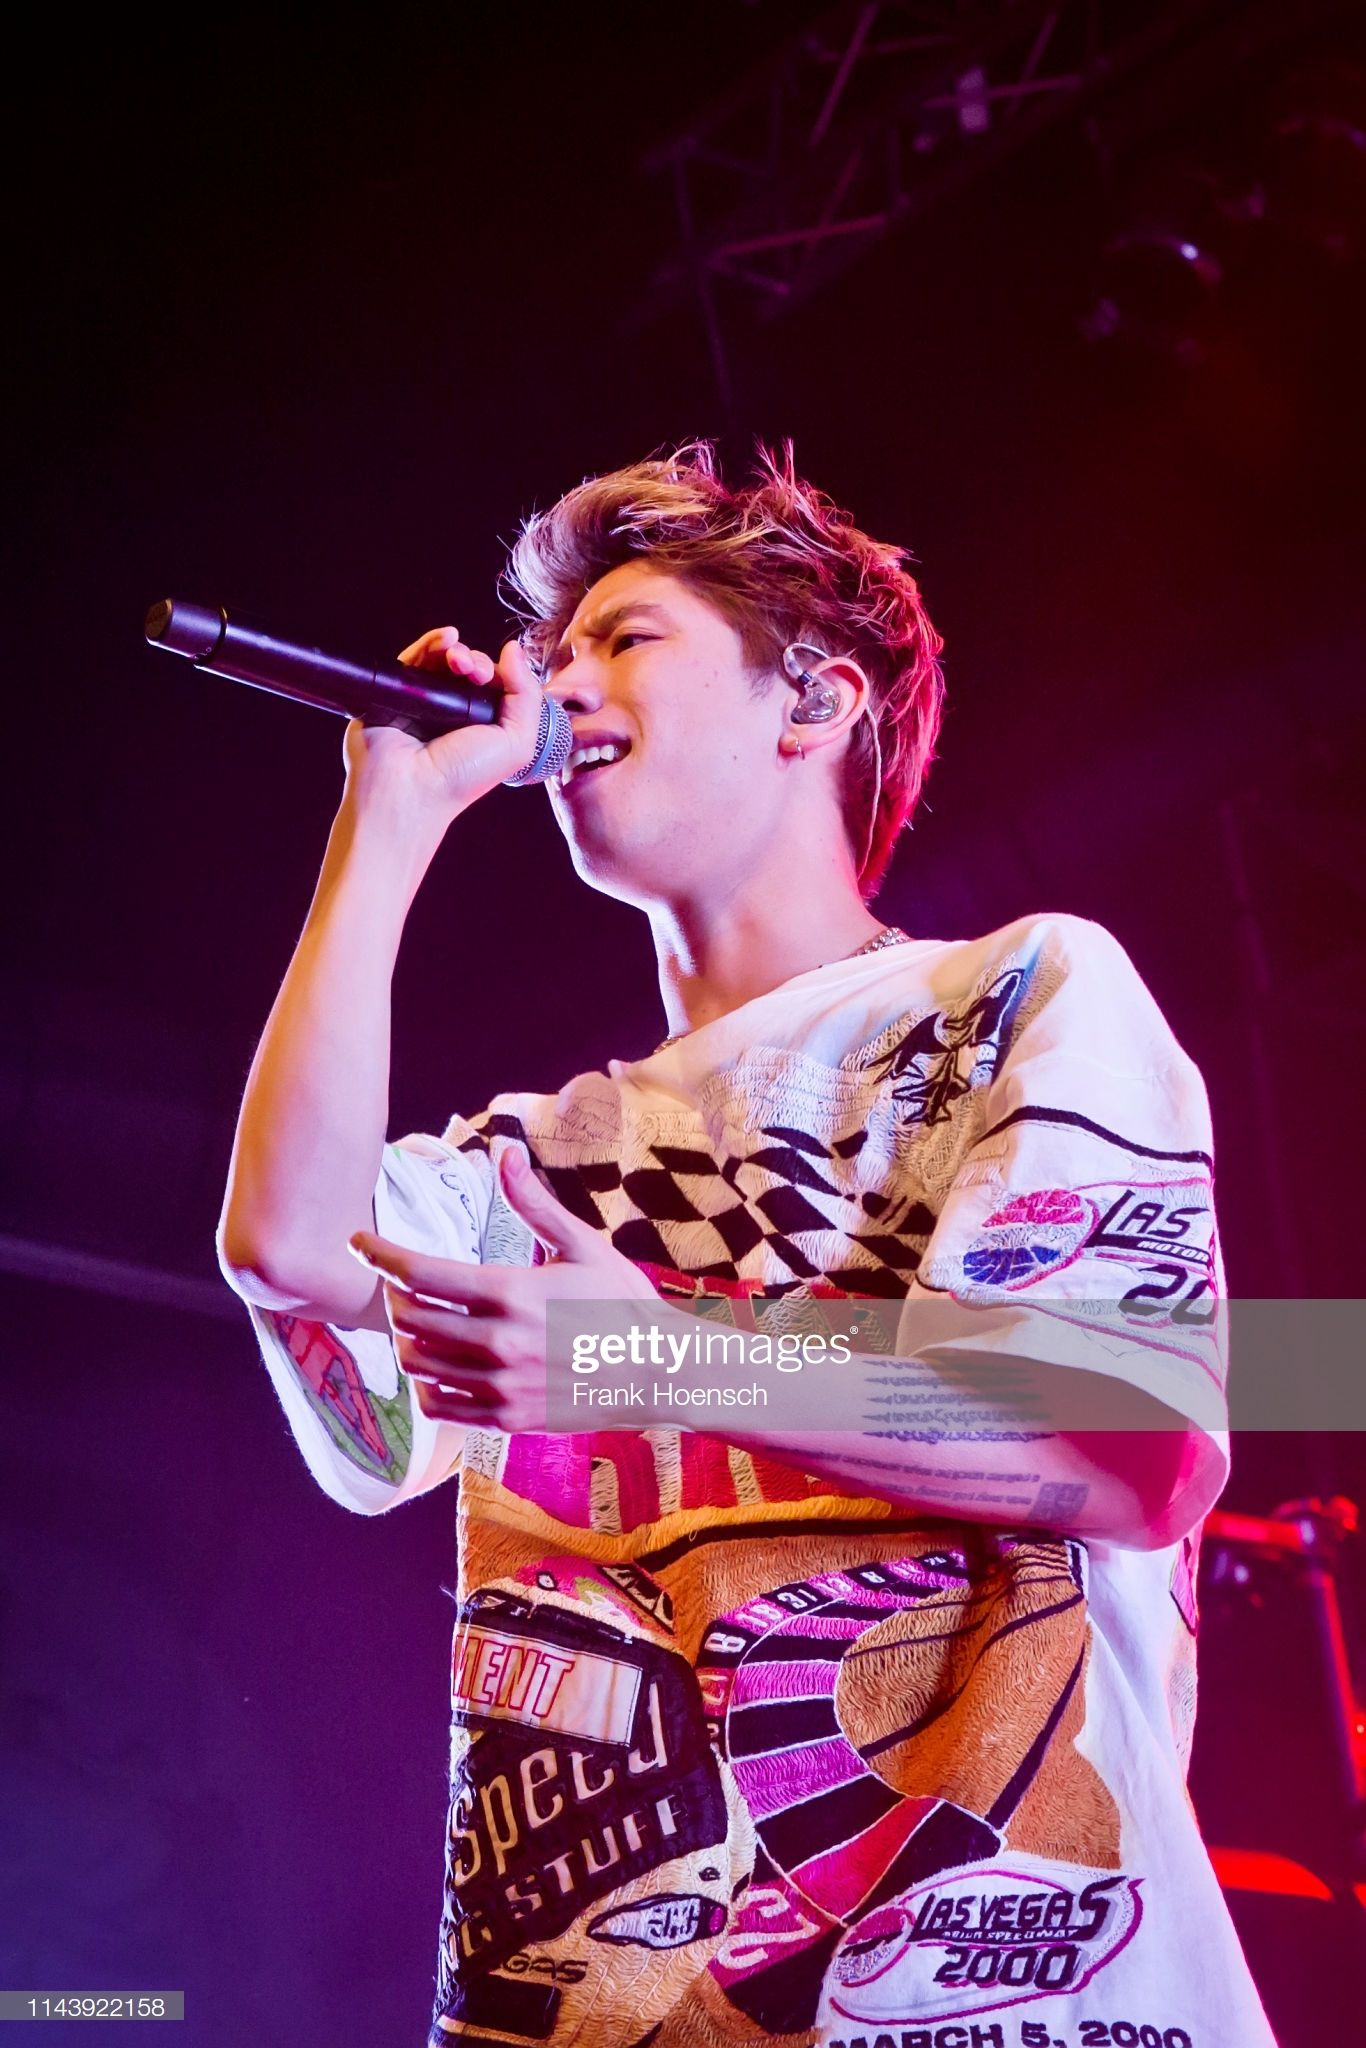 Singer Taka Of The Japanese Band One Ok Rock Performs Live On Stage ワンオク 壁紙 わんおくろっく ワンオク タカ